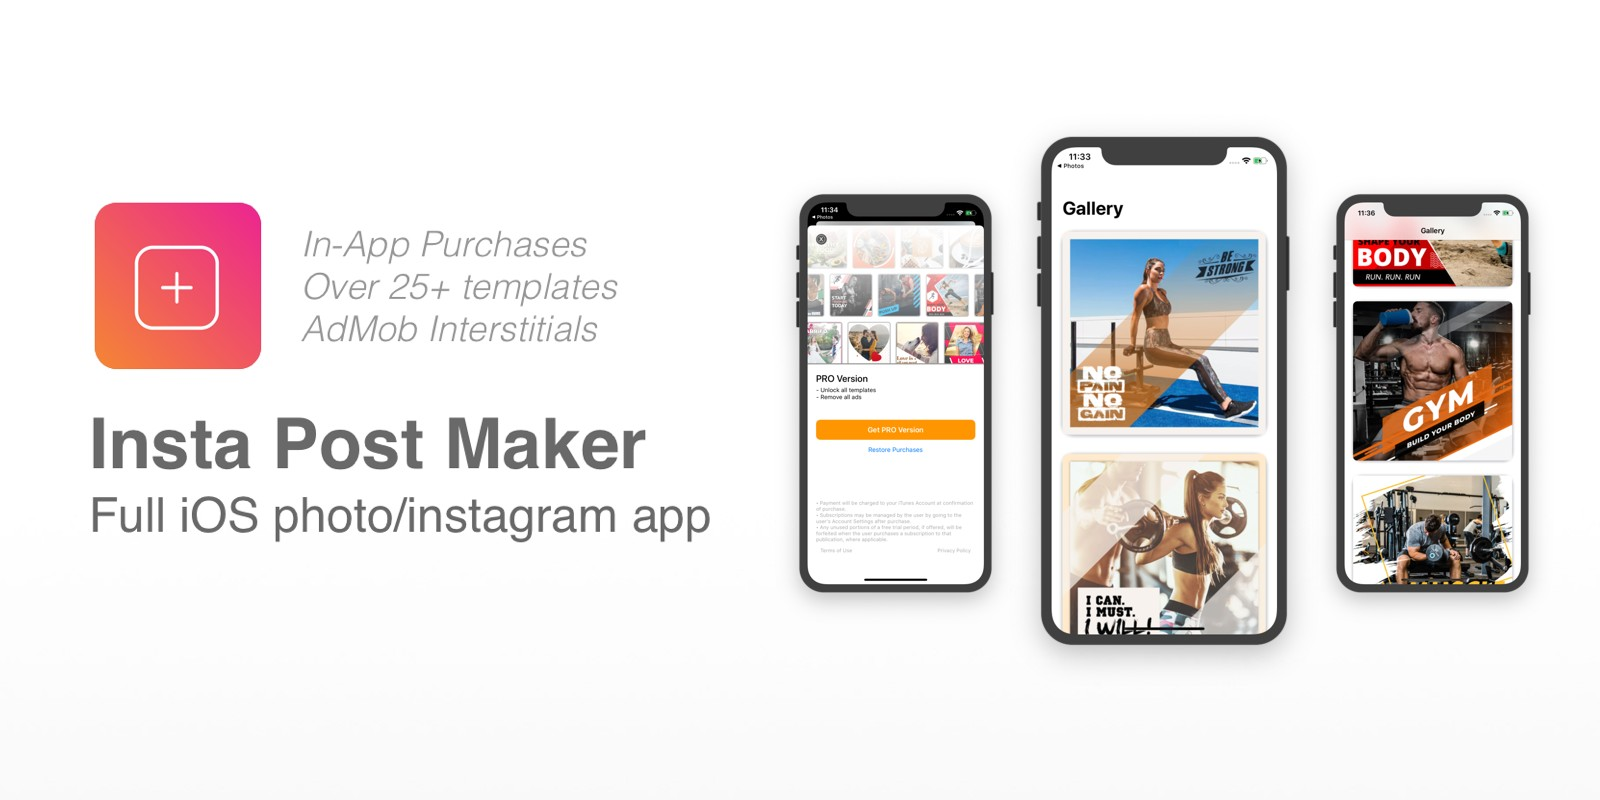 Insta Post Maker - Full iOS app With iAP Purchases